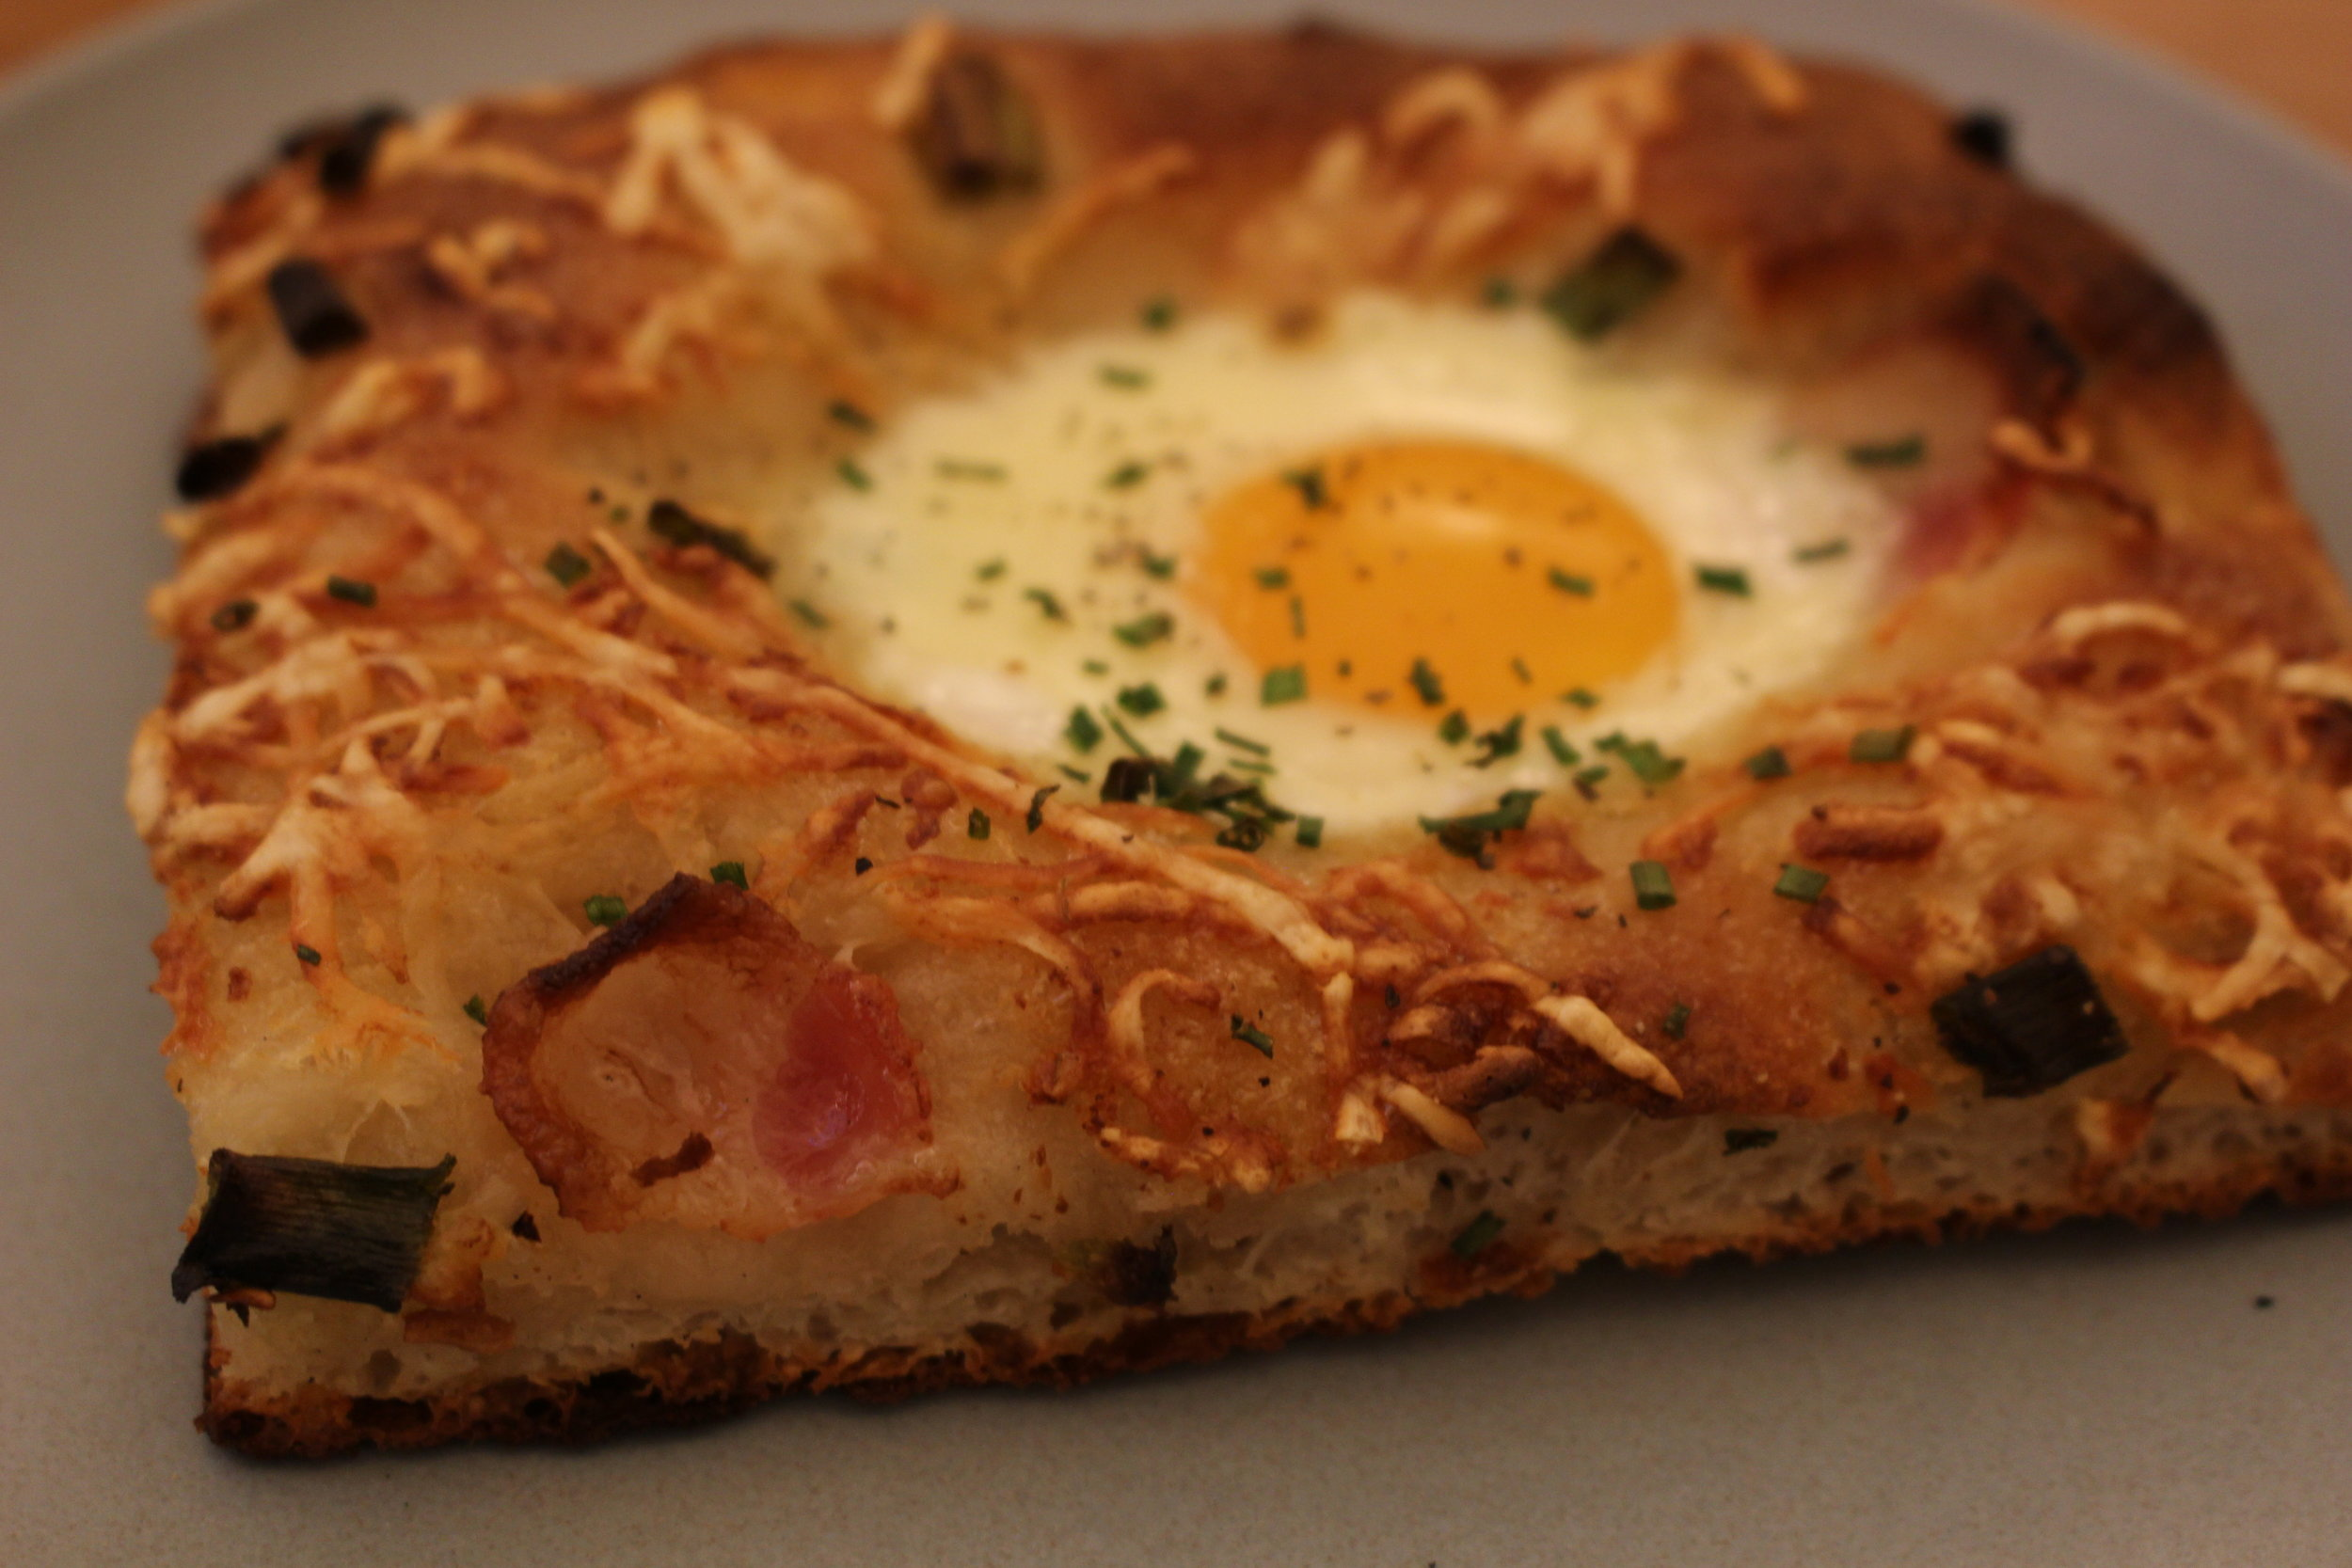 Breakfast pizza with Hill's Bacon, green onion, creme fraiche and an egg (TP).